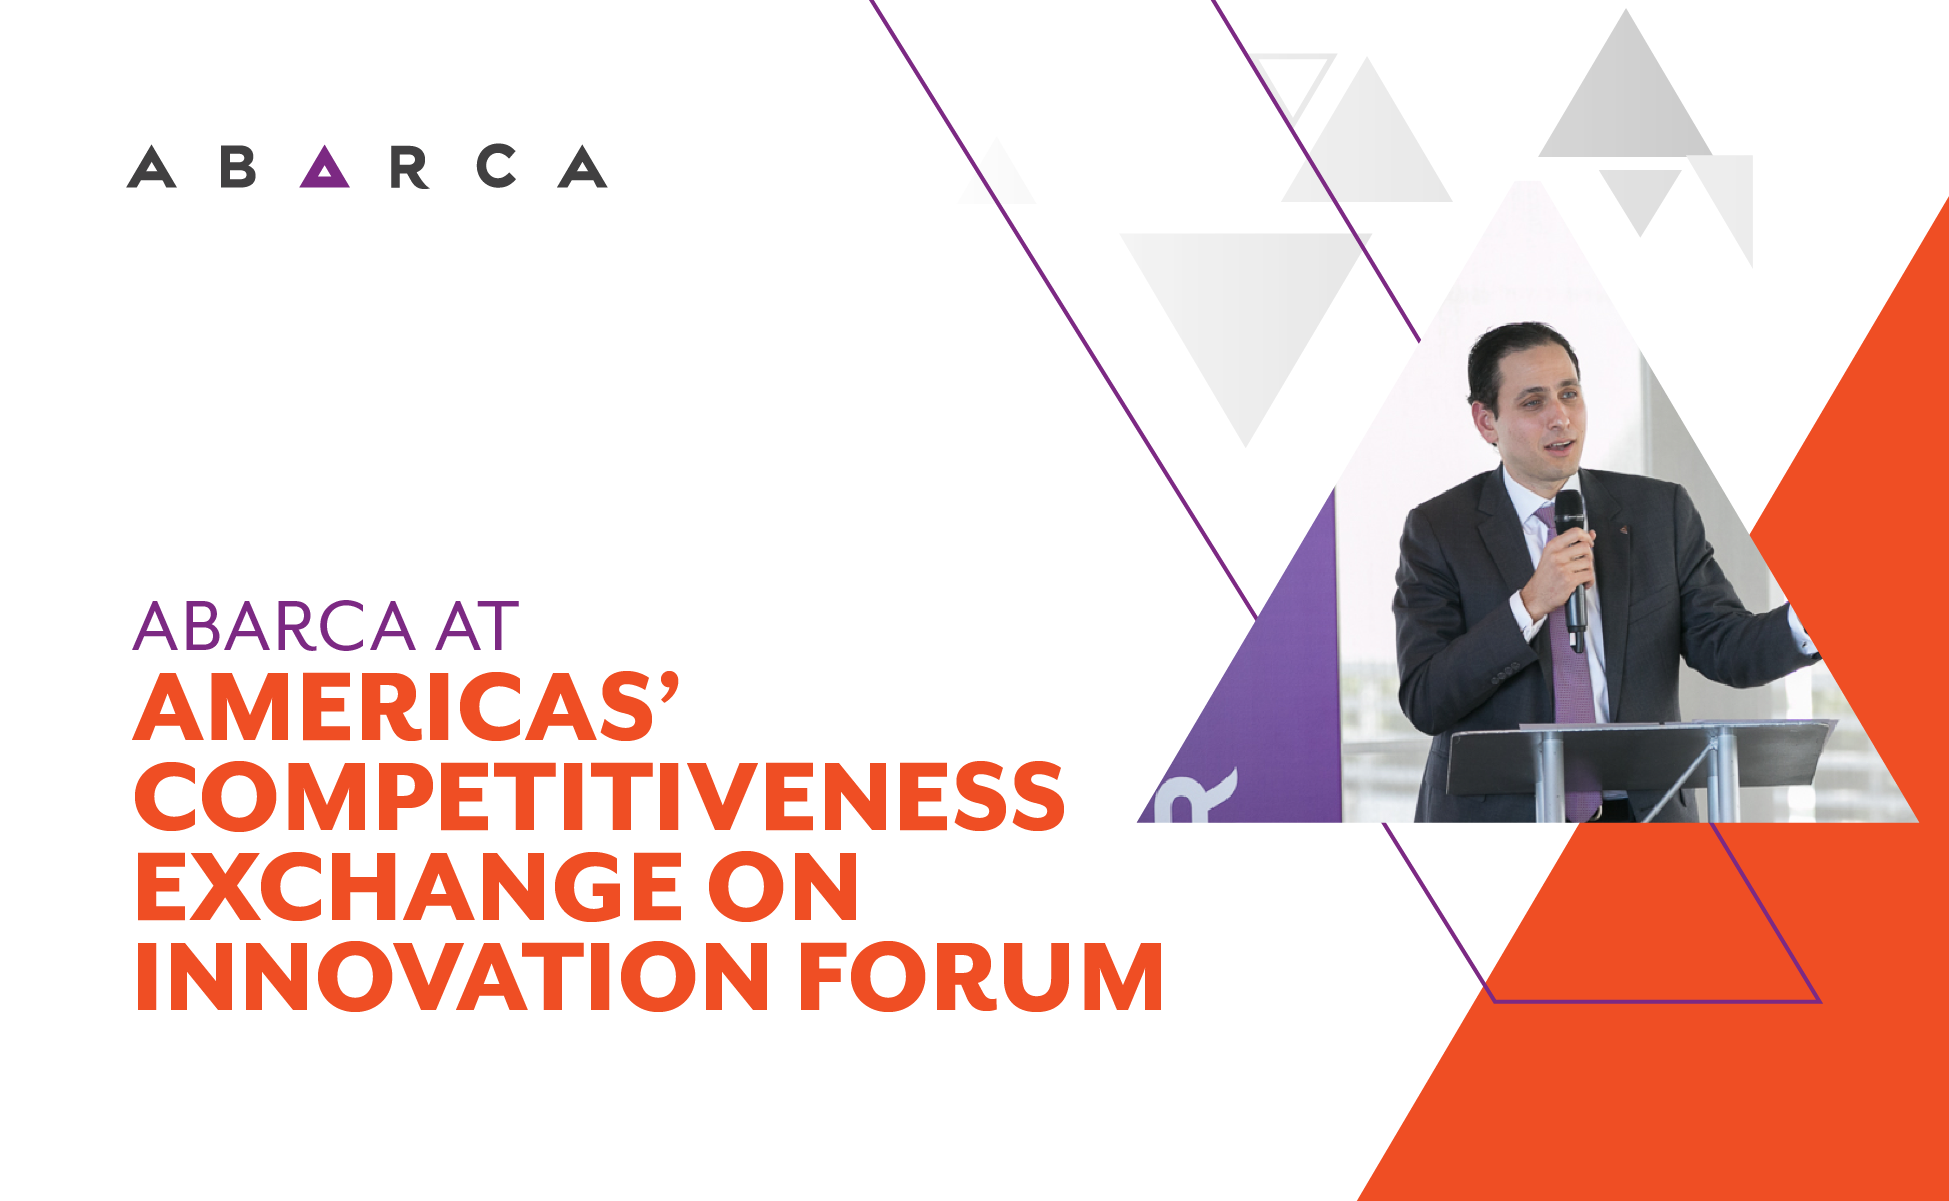 Abarca selected to present at Americas' Competitiveness Exchange on Innovation Forum